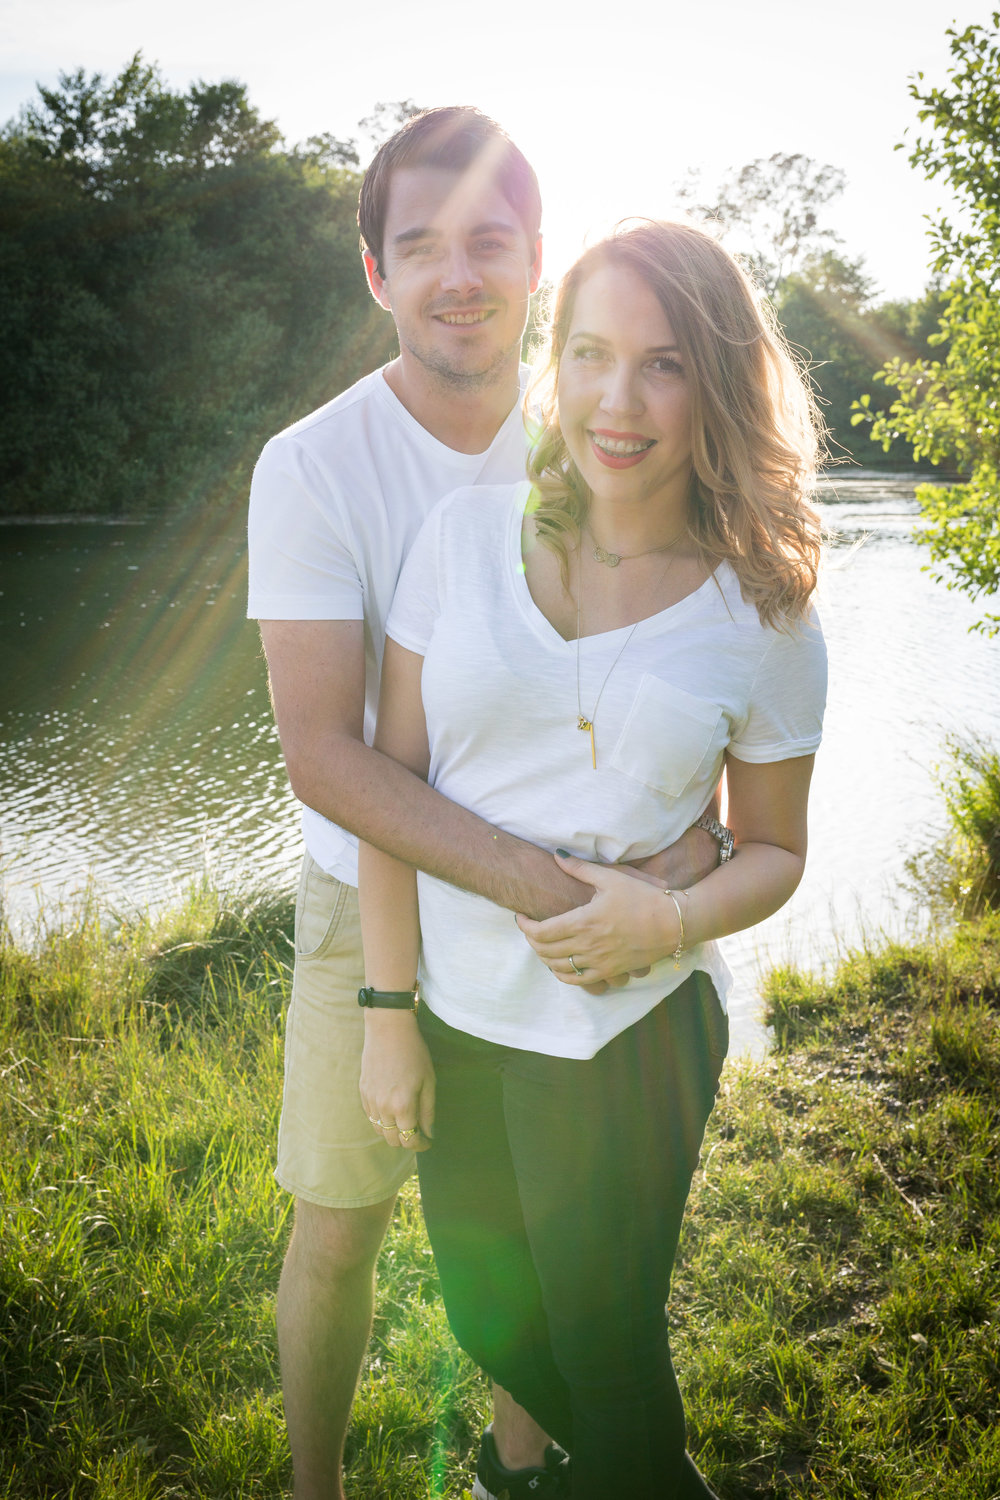 Image of Lacey & Dan Harris' Engagement Photoshoot in Heybridge, Maldon